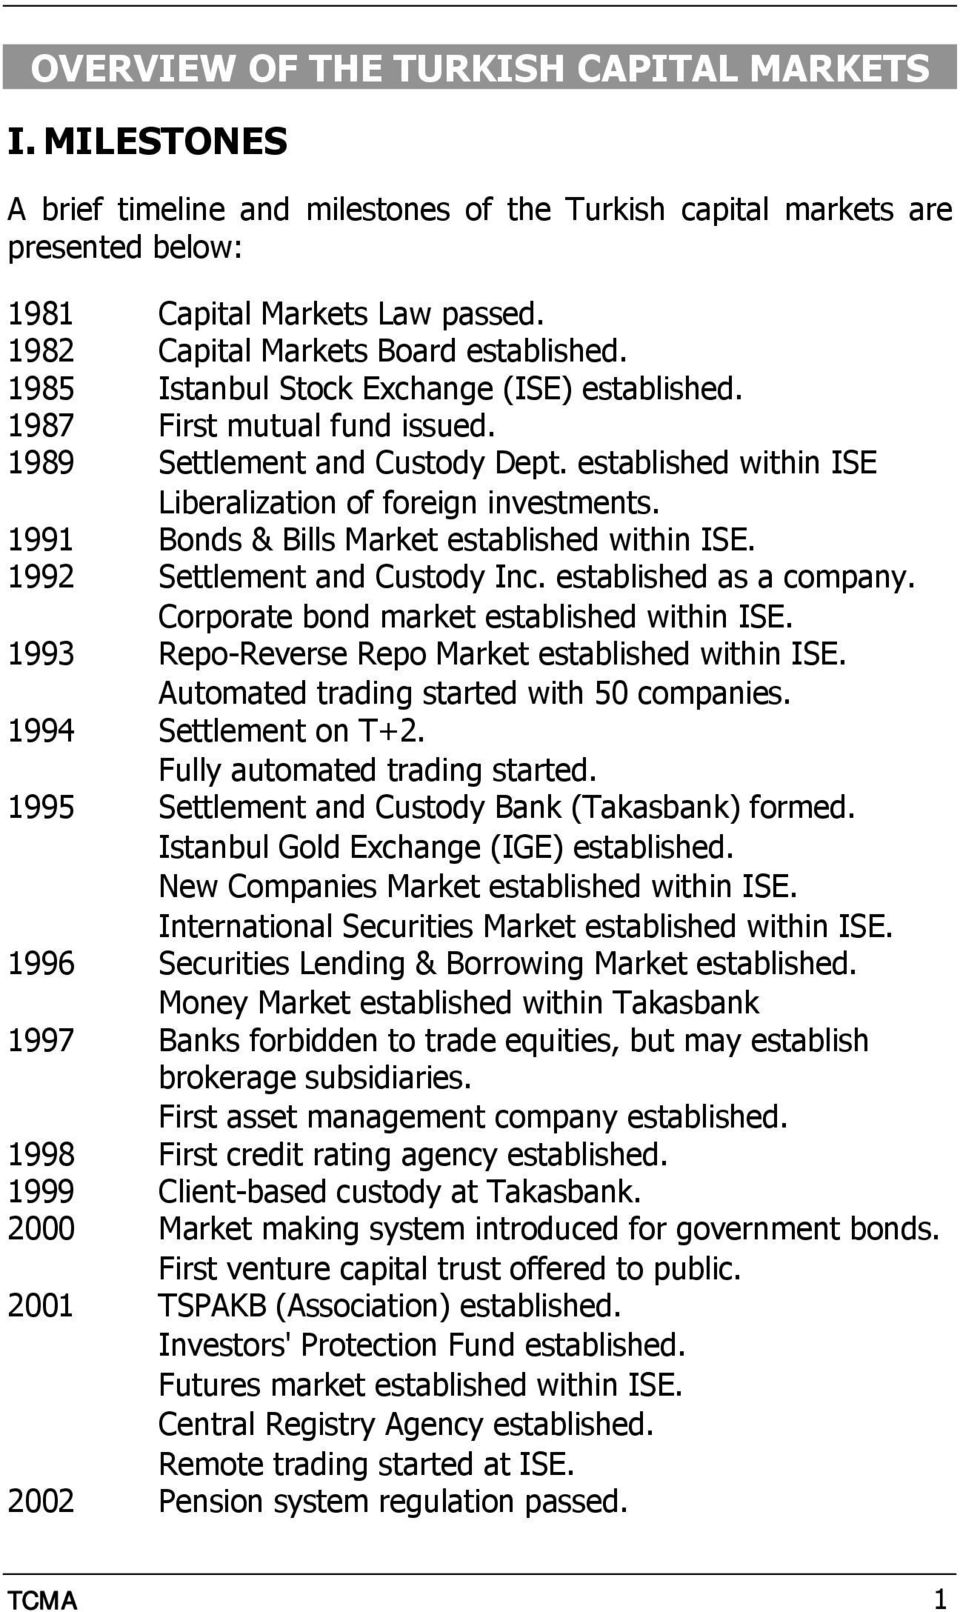 established within ISE Liberalization of foreign investments. 1991 Bonds & Bills Market established within ISE. 1992 Settlement and Custody Inc. established as a company.